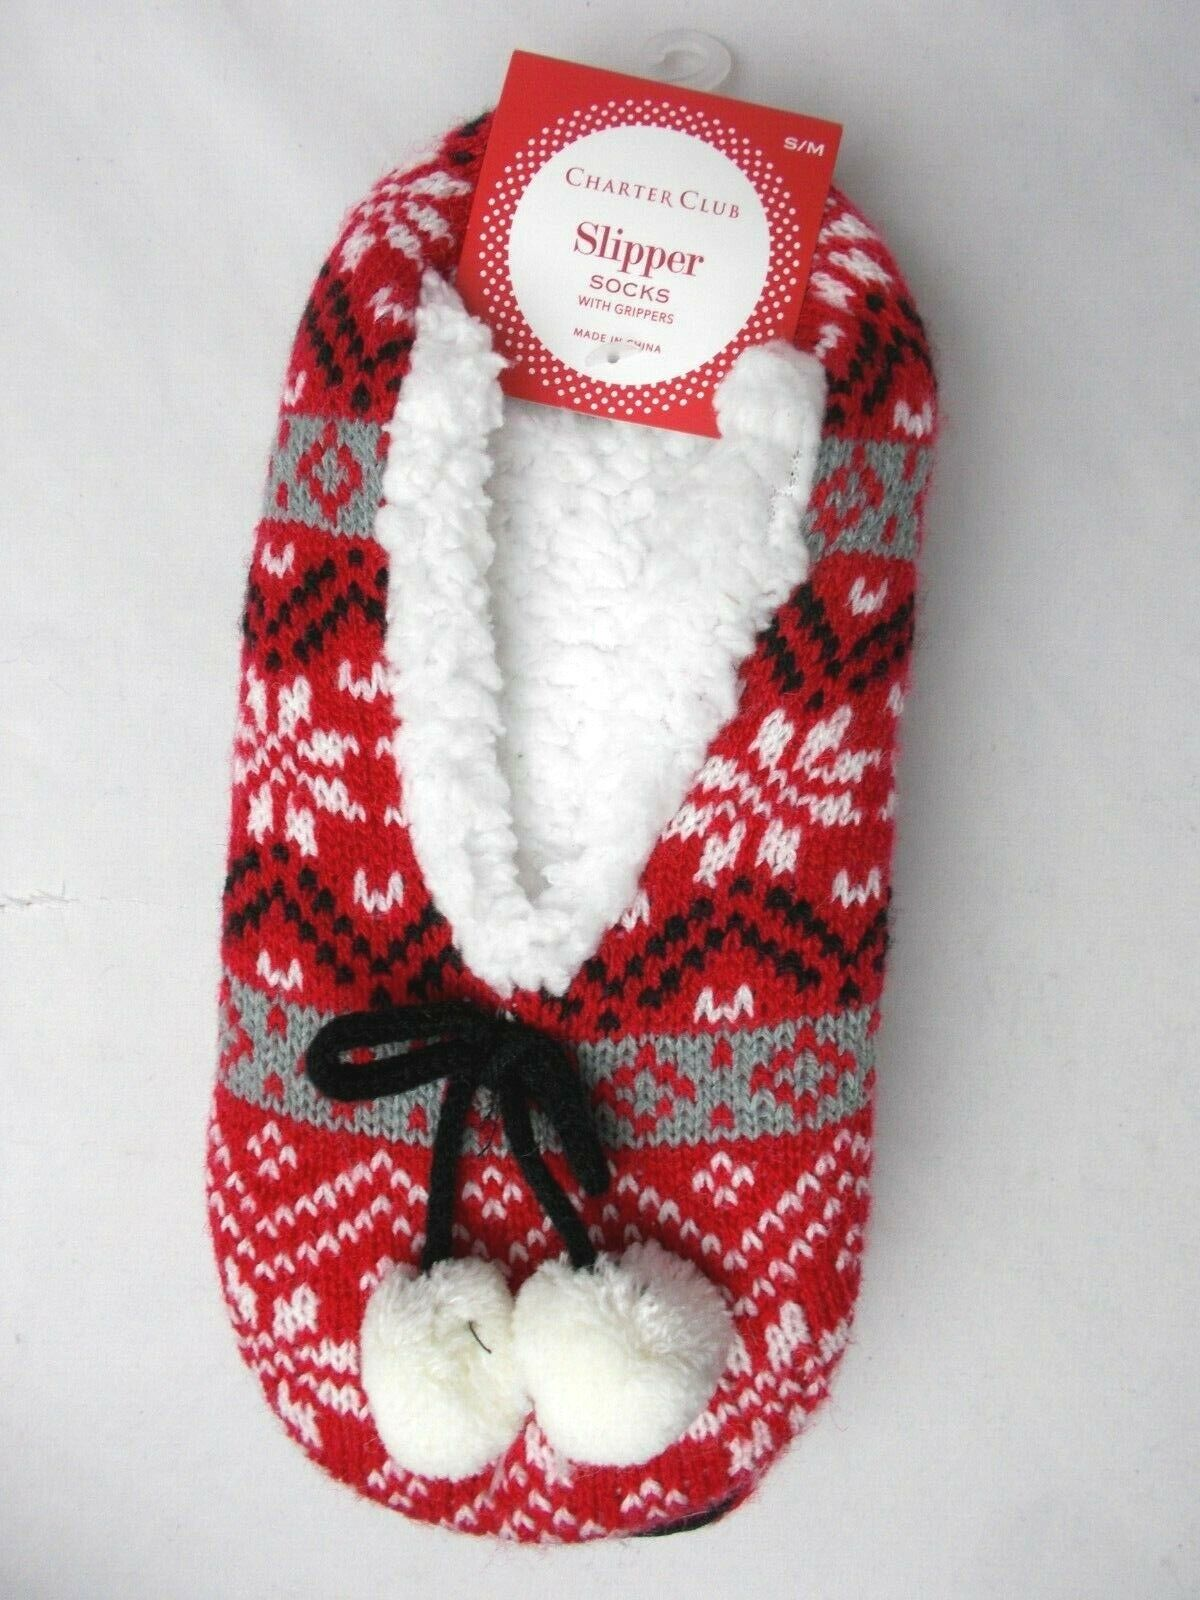 Charter Club Holiday Slipper Socks with Grippers Size S/M Re